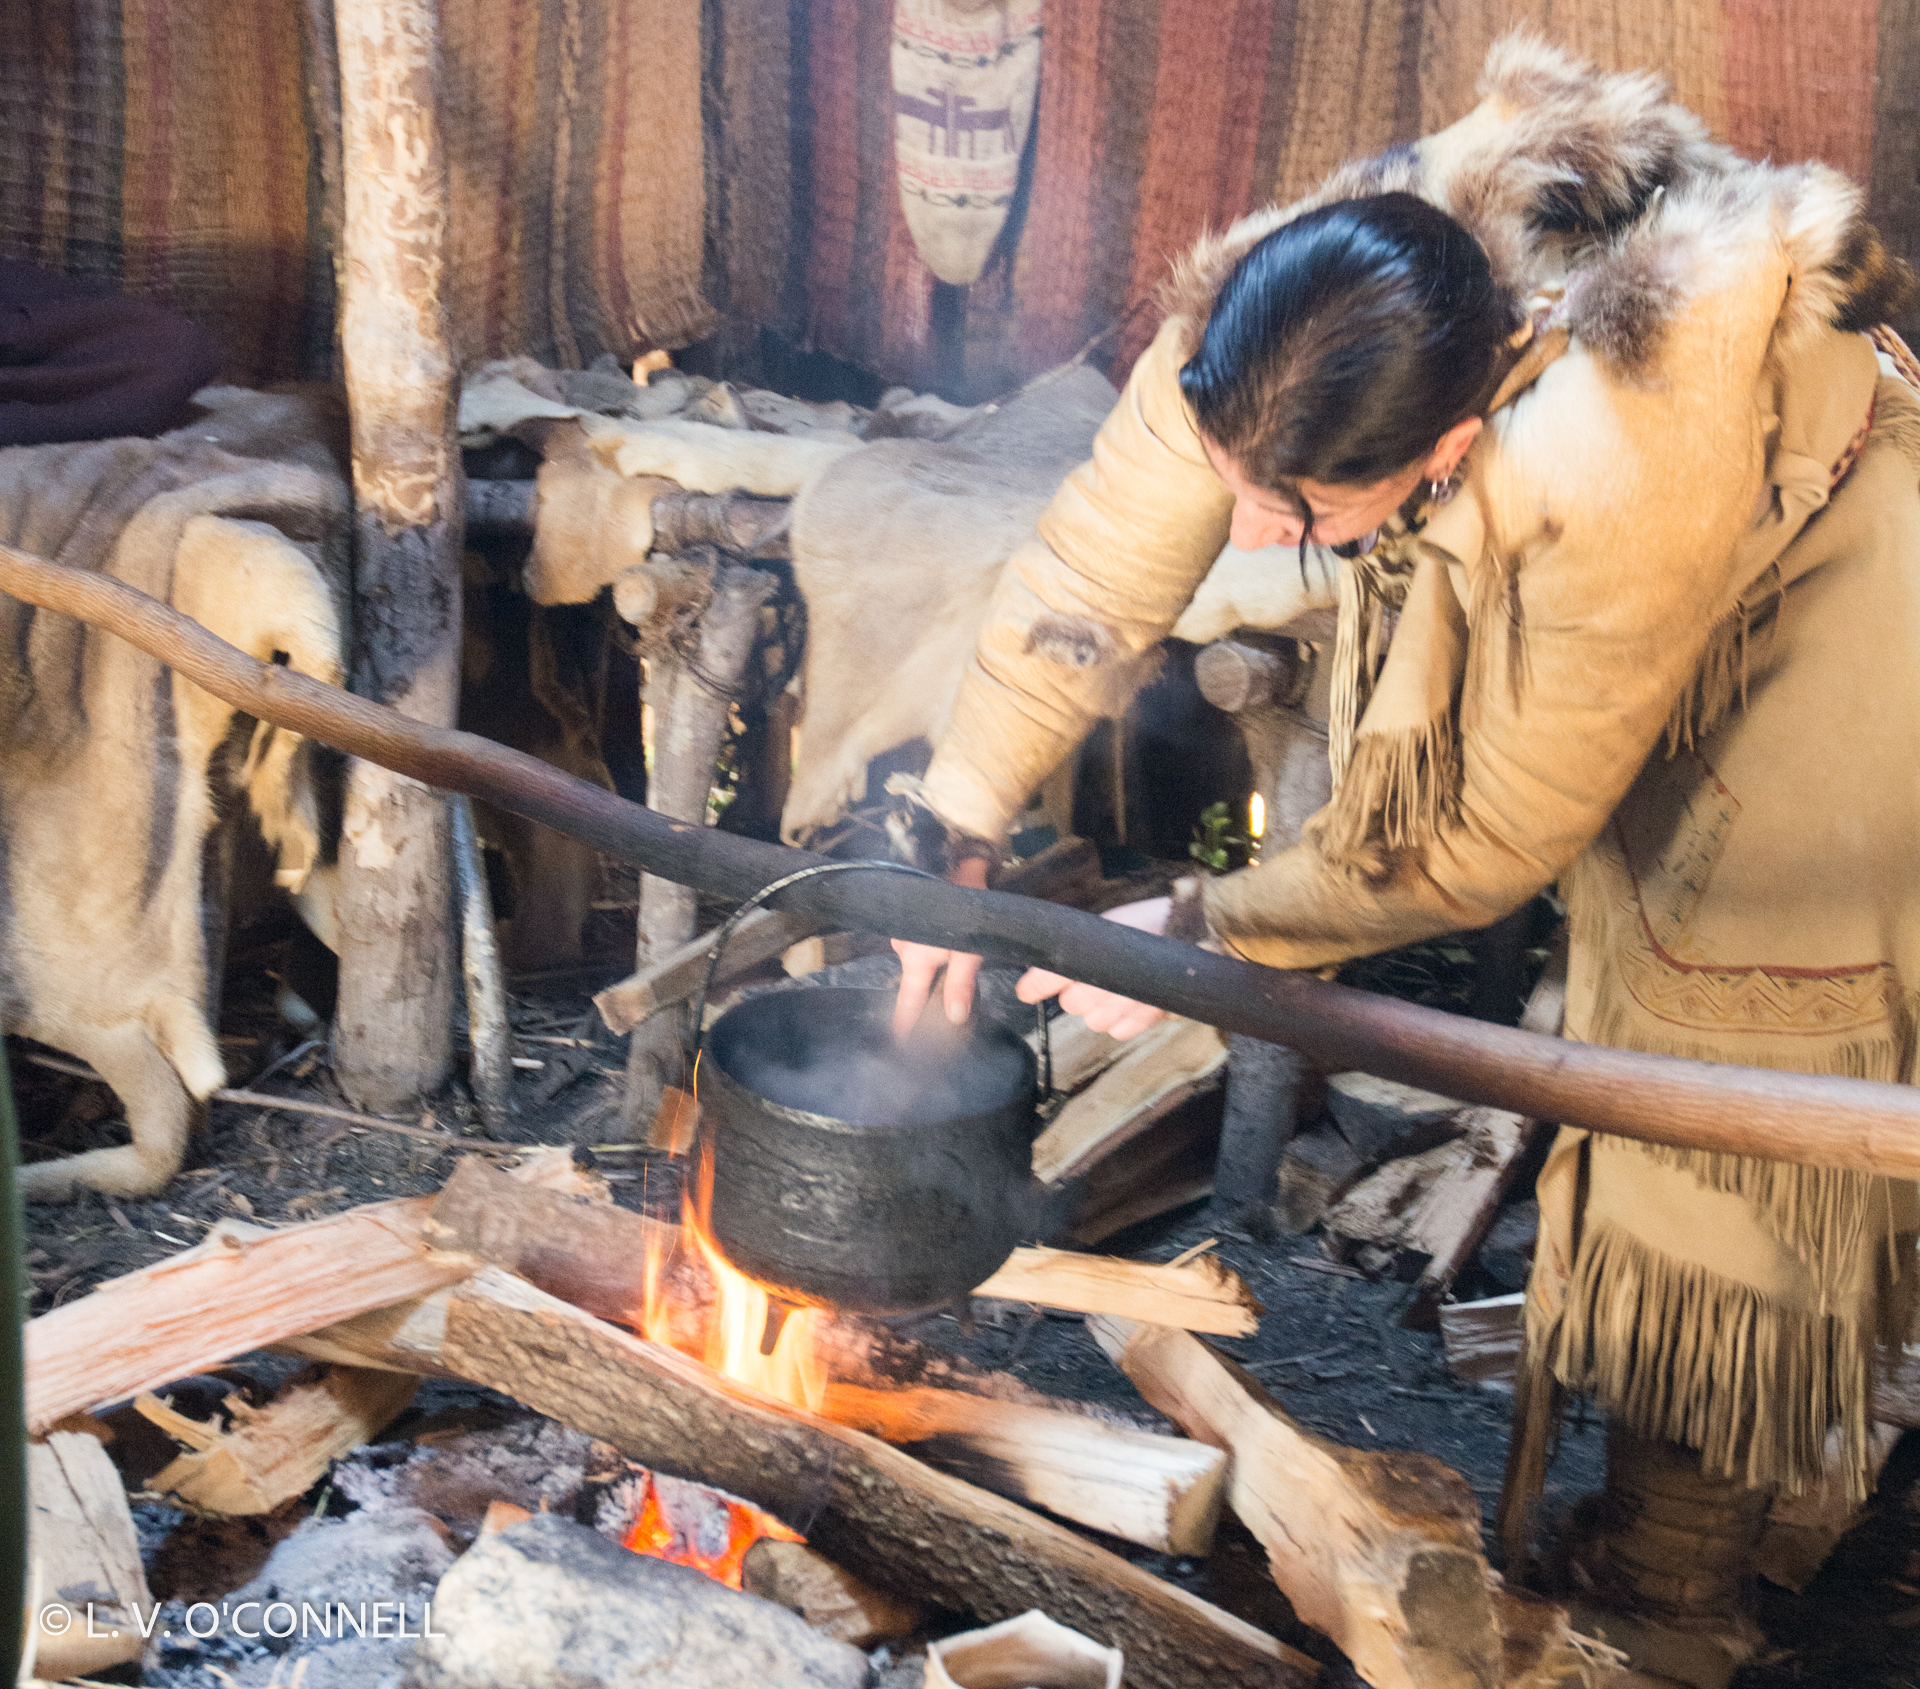 A  Wampanoag stirs stew over a fire in a Wetu.